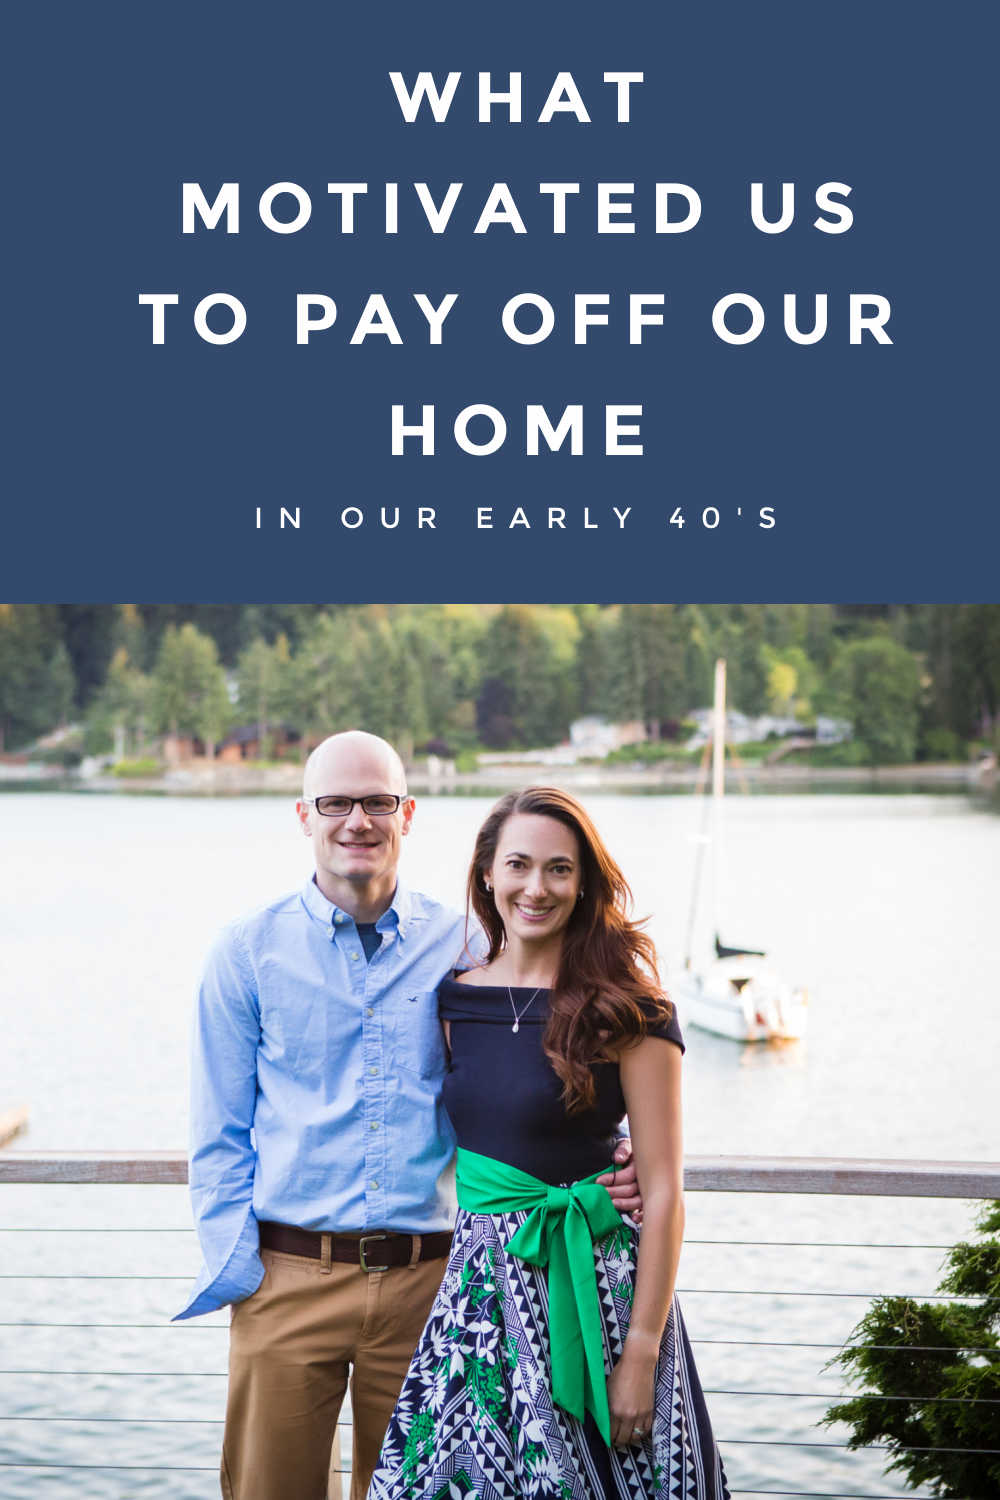 MOTIVATED HOME PAY  OFF